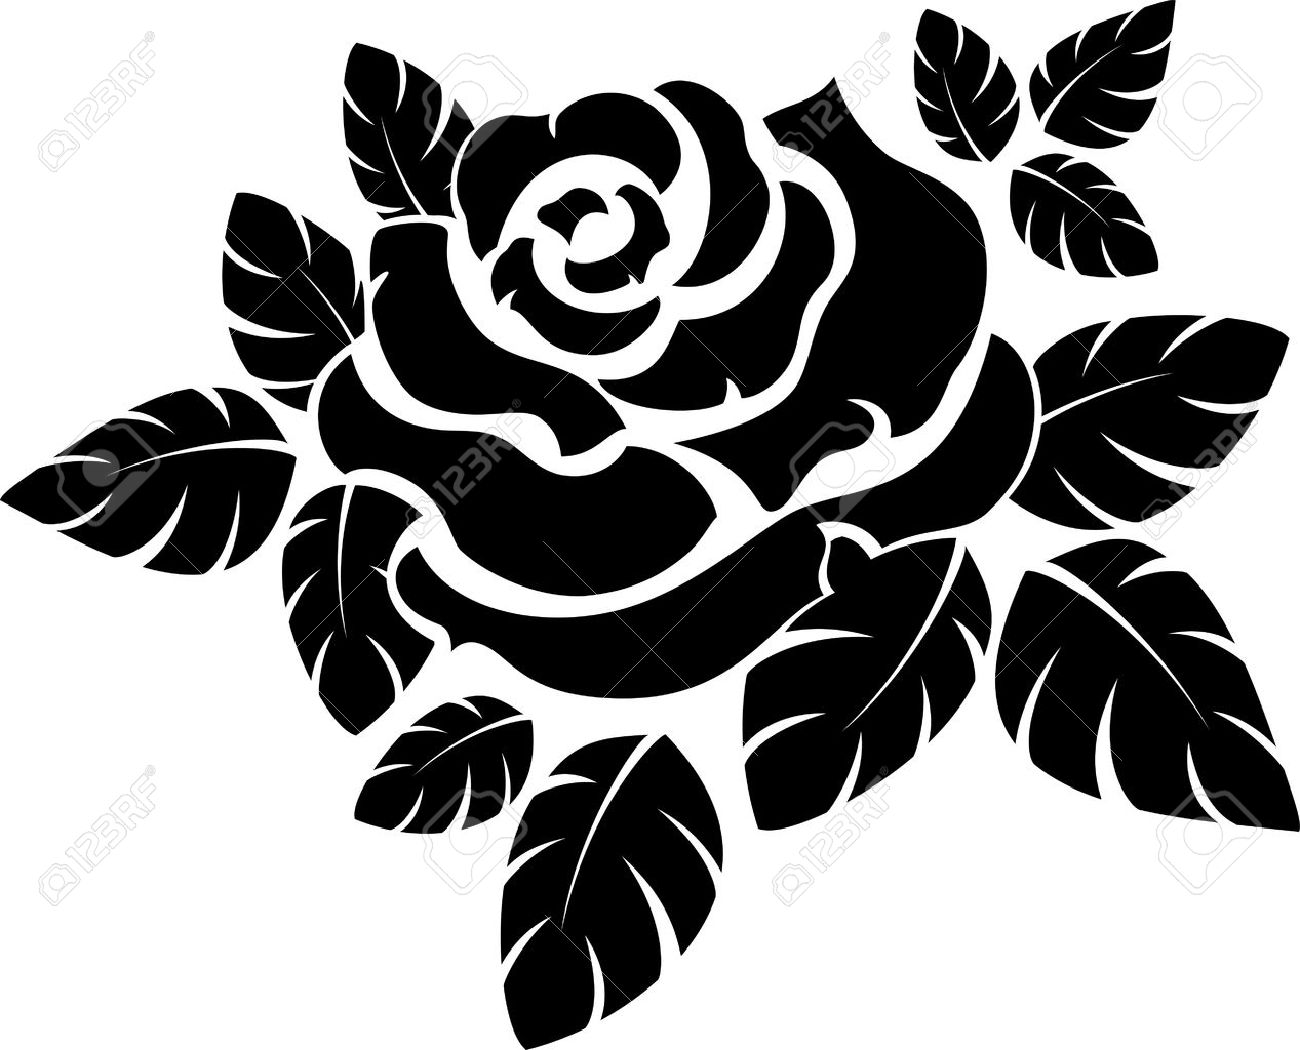 vector rose silhouette isolated